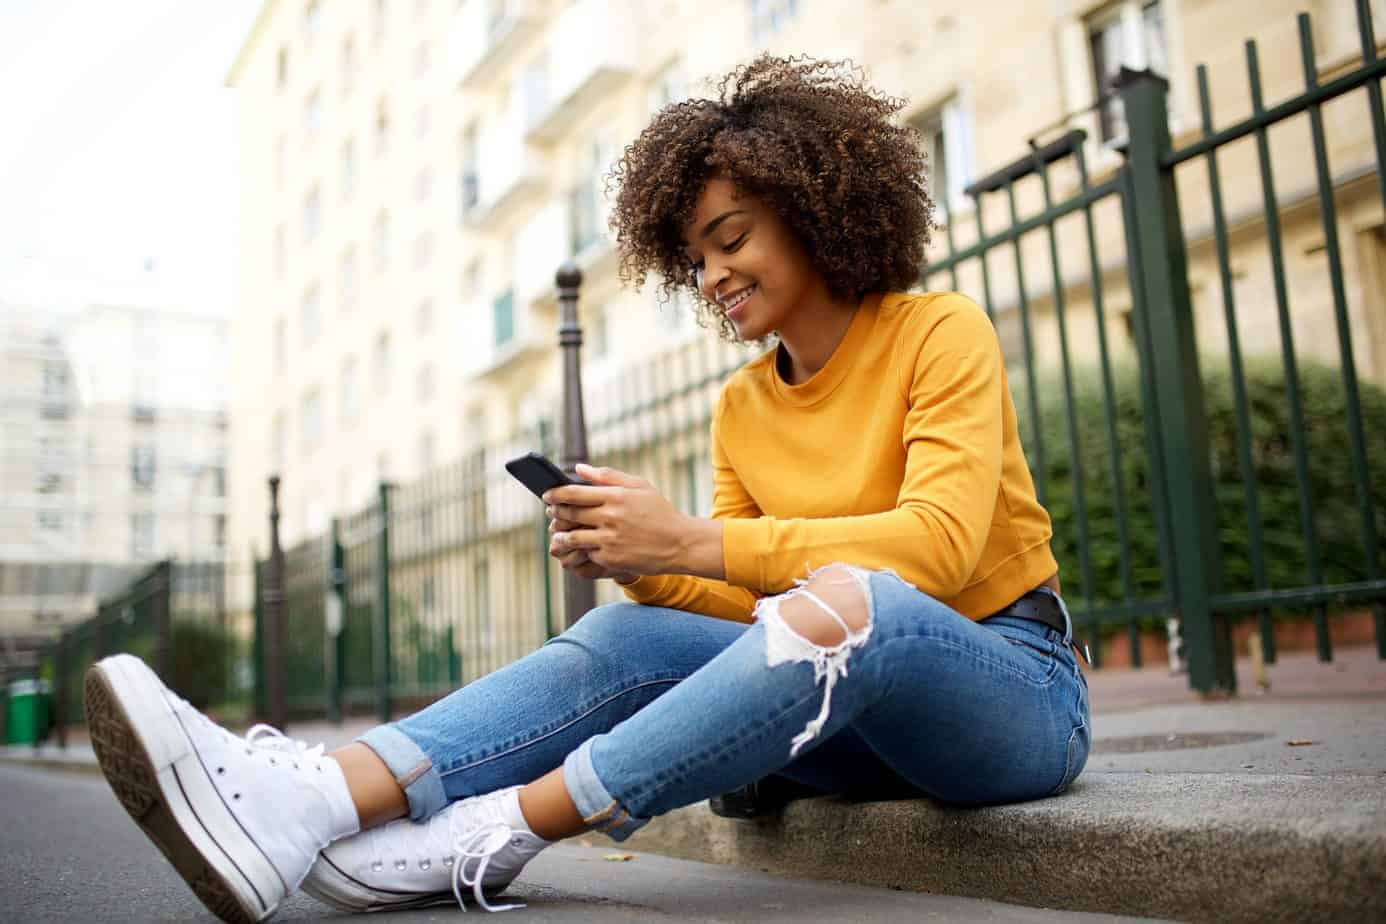 Beautiful African American female with curly hair sitting on a curb using her mobile phone wearing jeans, a yellow shirt and converse.